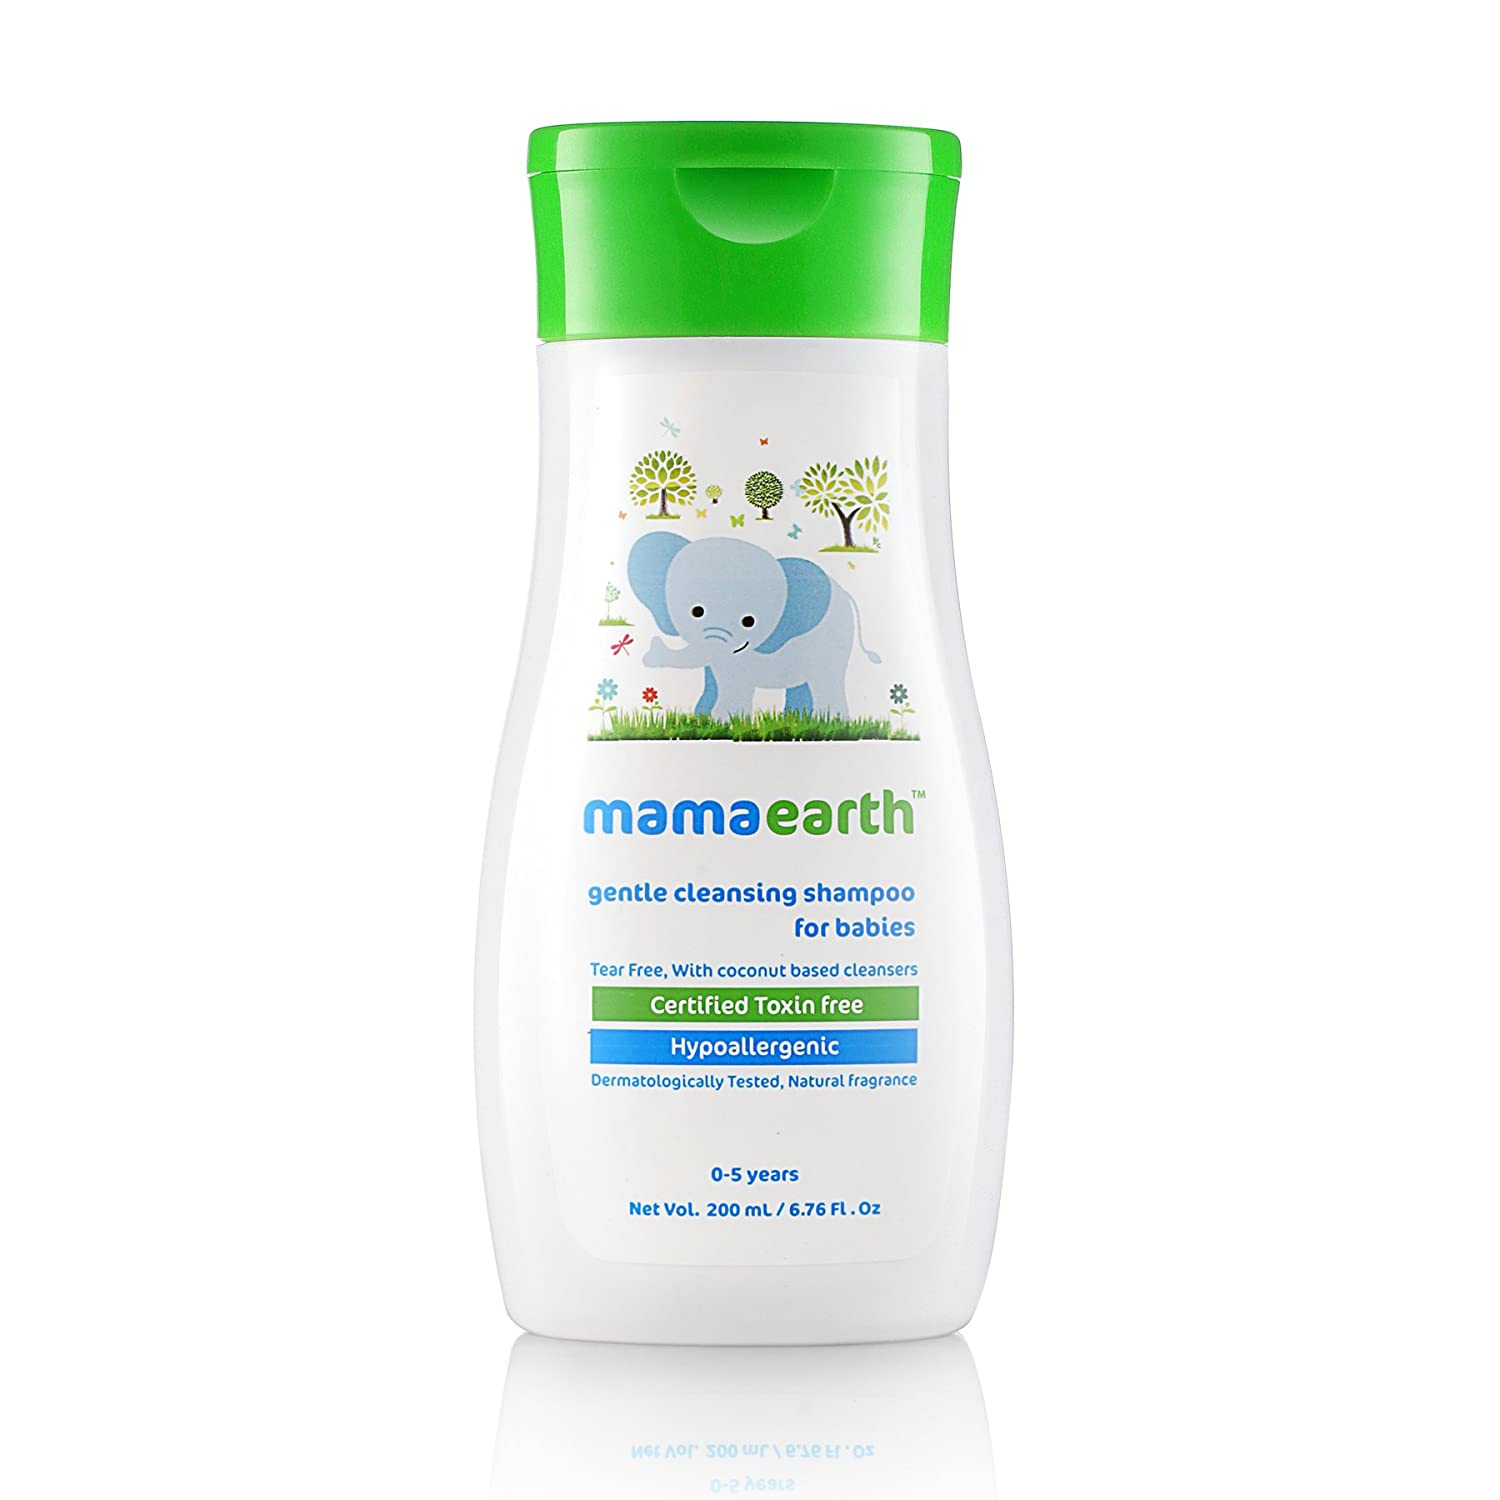 Mamaearth products for babies review